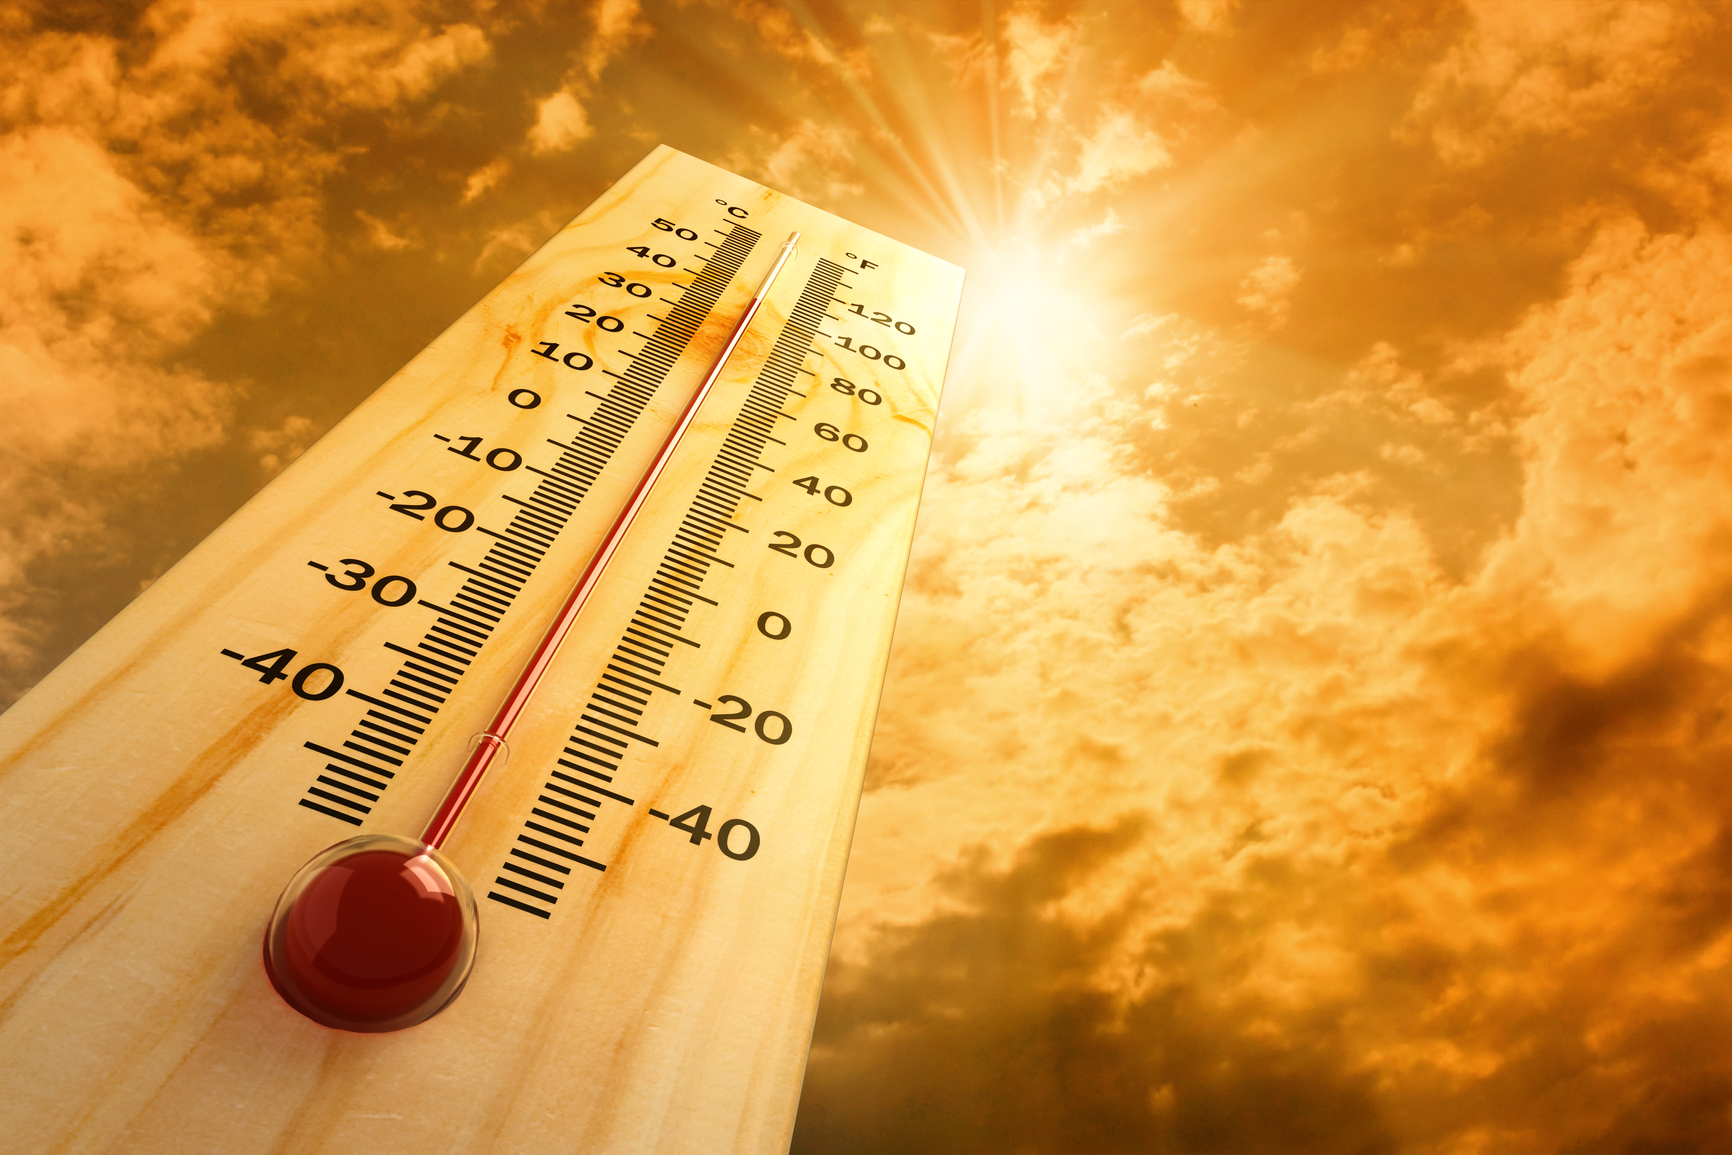 Albania engulfed by a heat wave, authorities give the alert